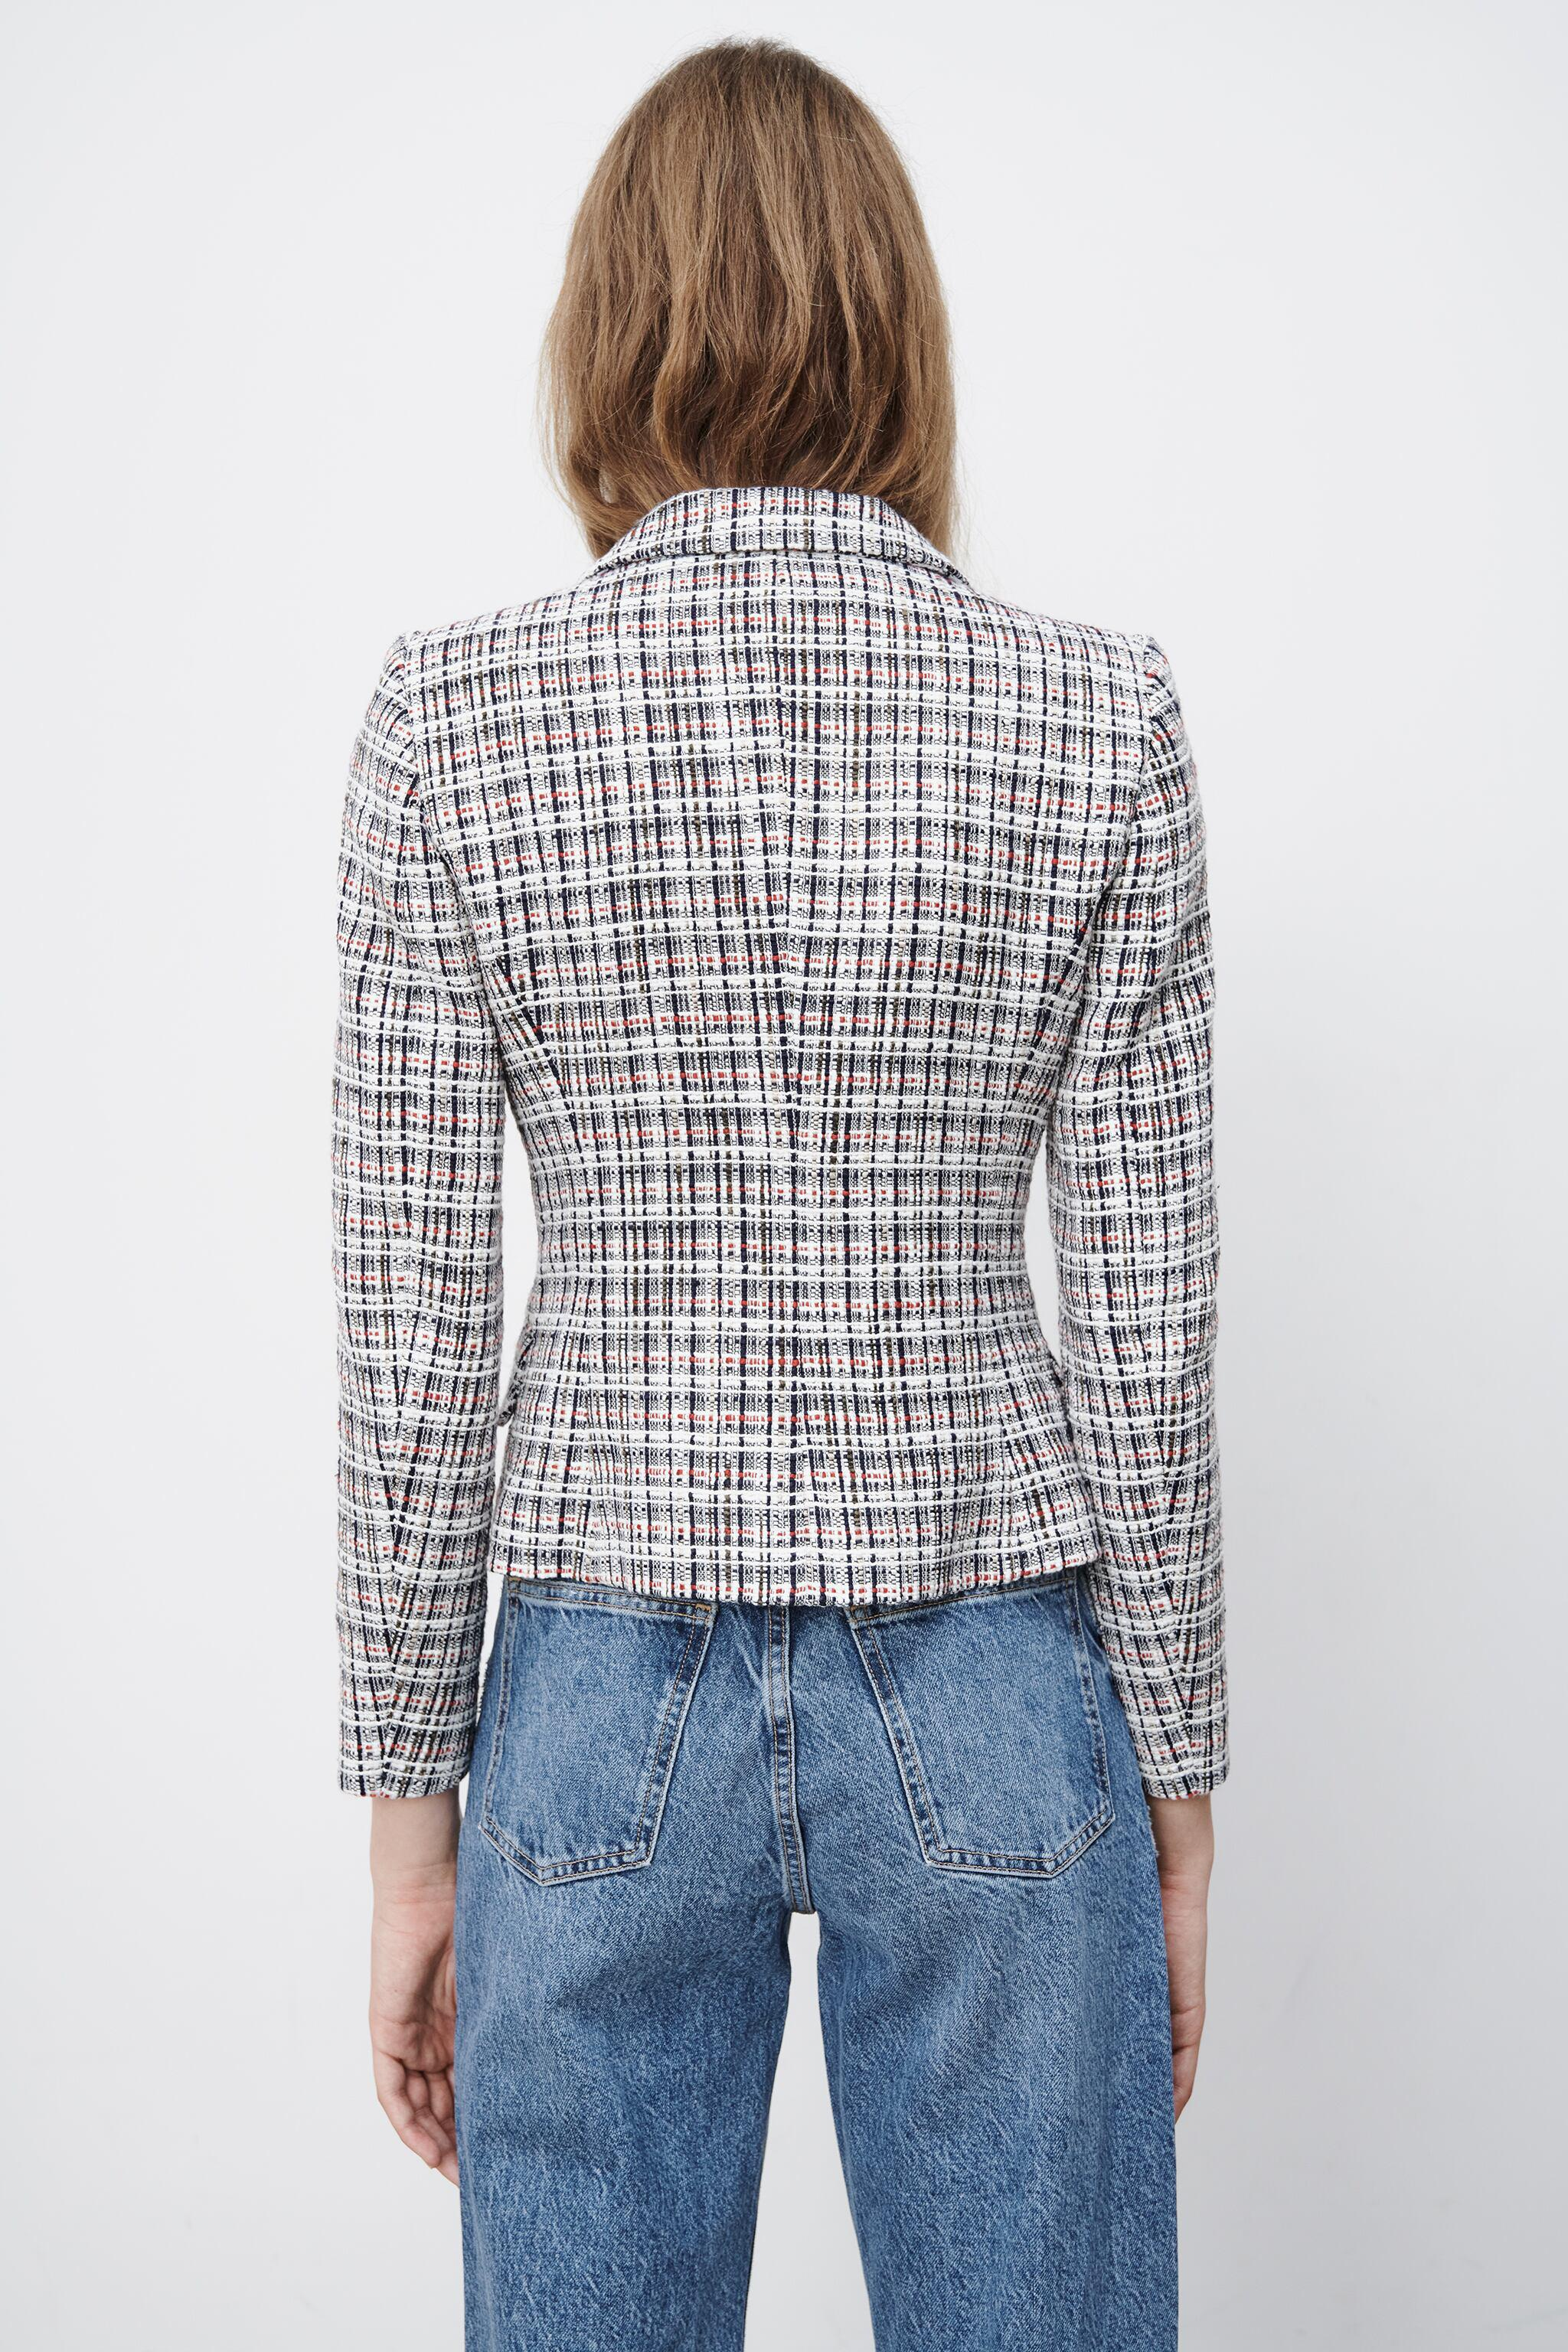 DOUBLE BREASTED TEXTURED WEAVE JACKET 7